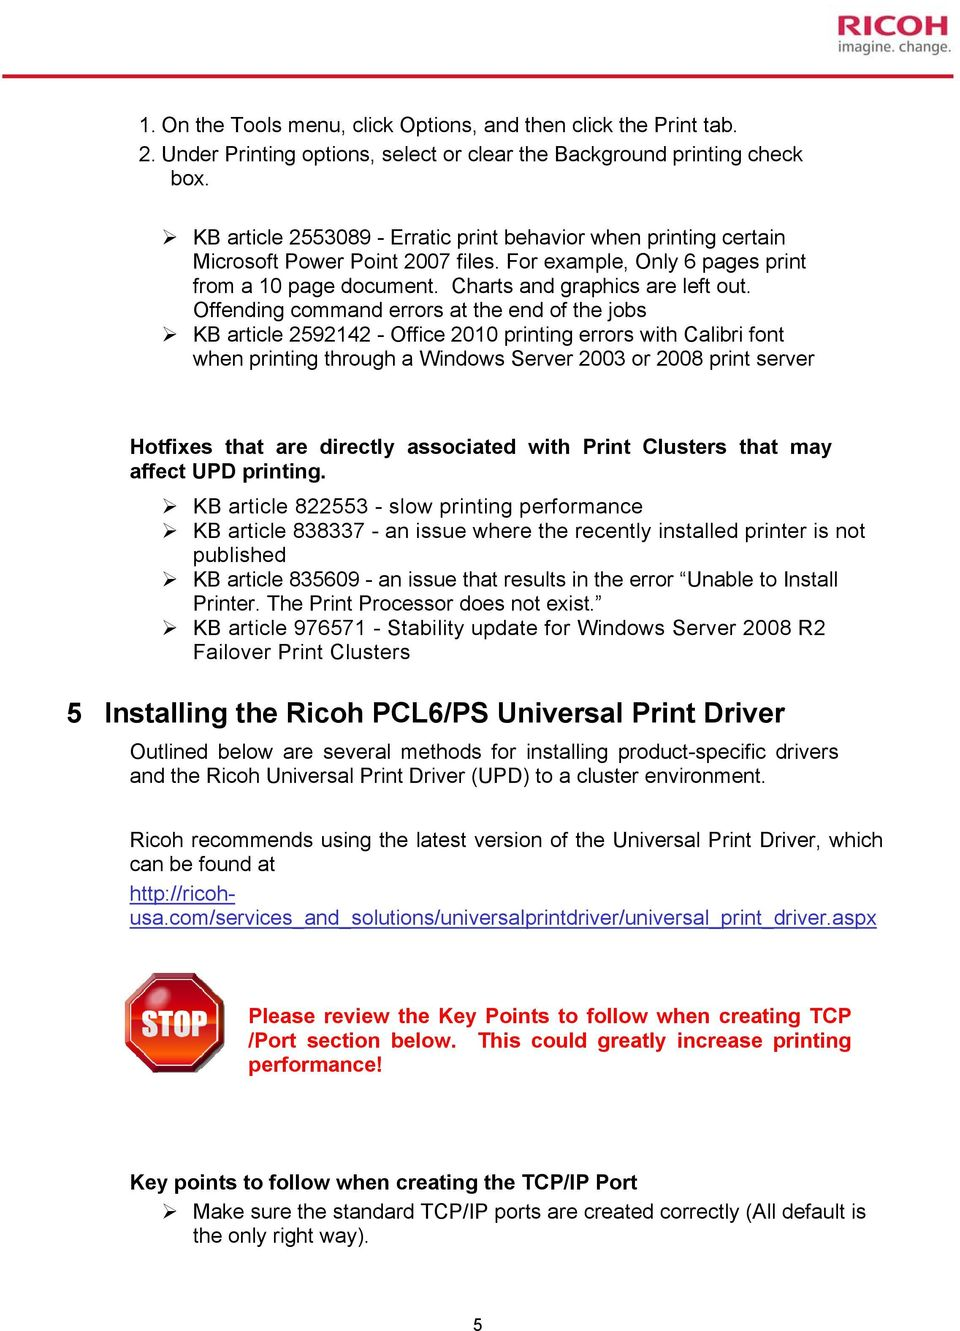 Best Practices Using Ricoh Universal Printer Drivers (UPD